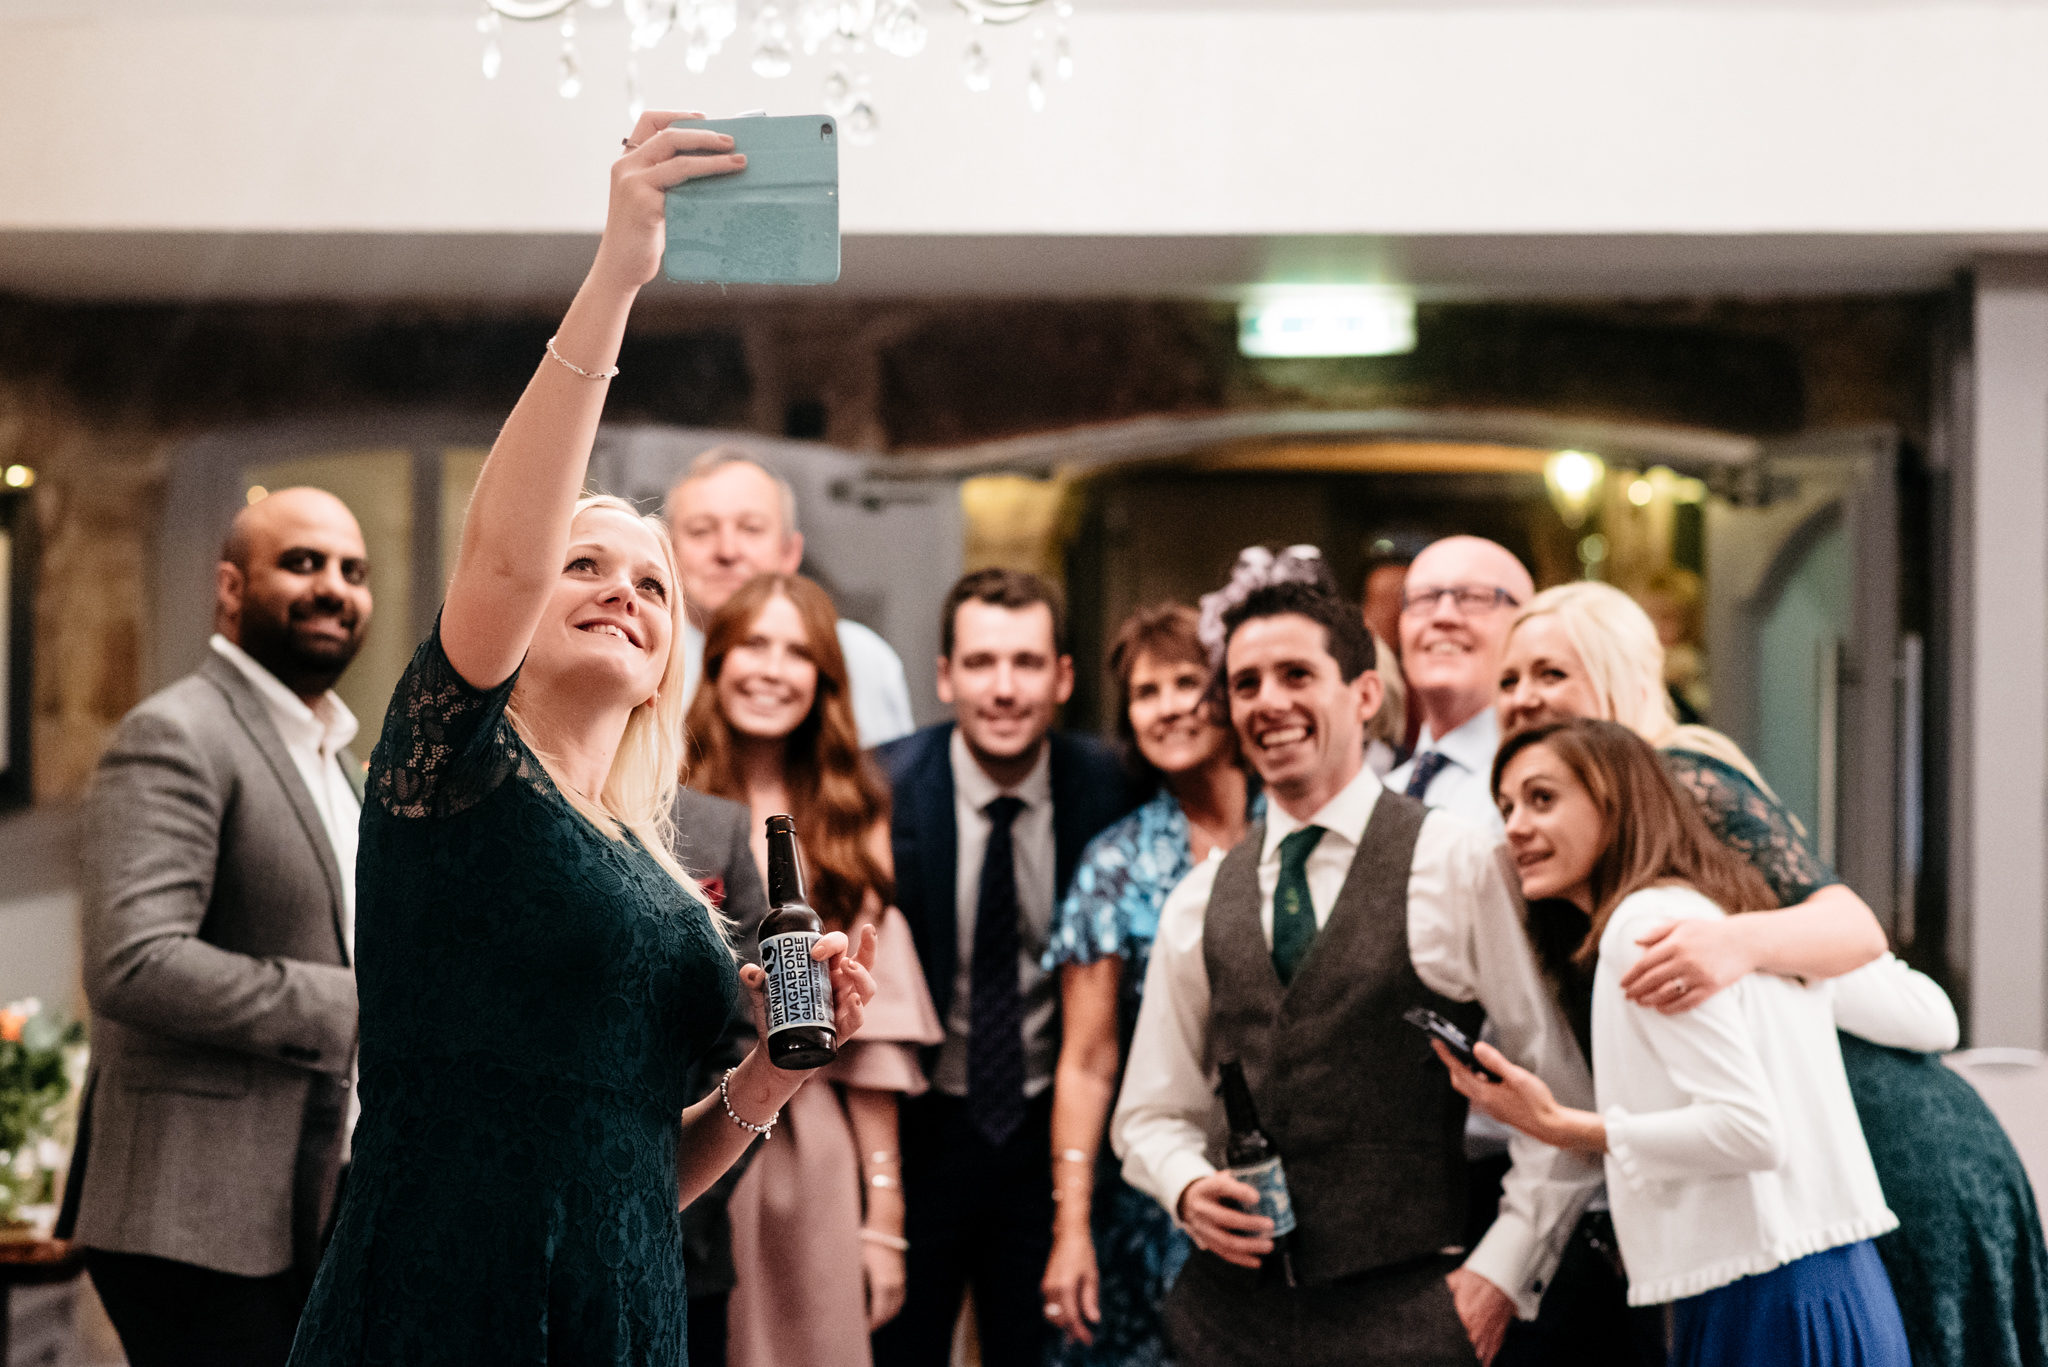 bride's sister takes big group selfie